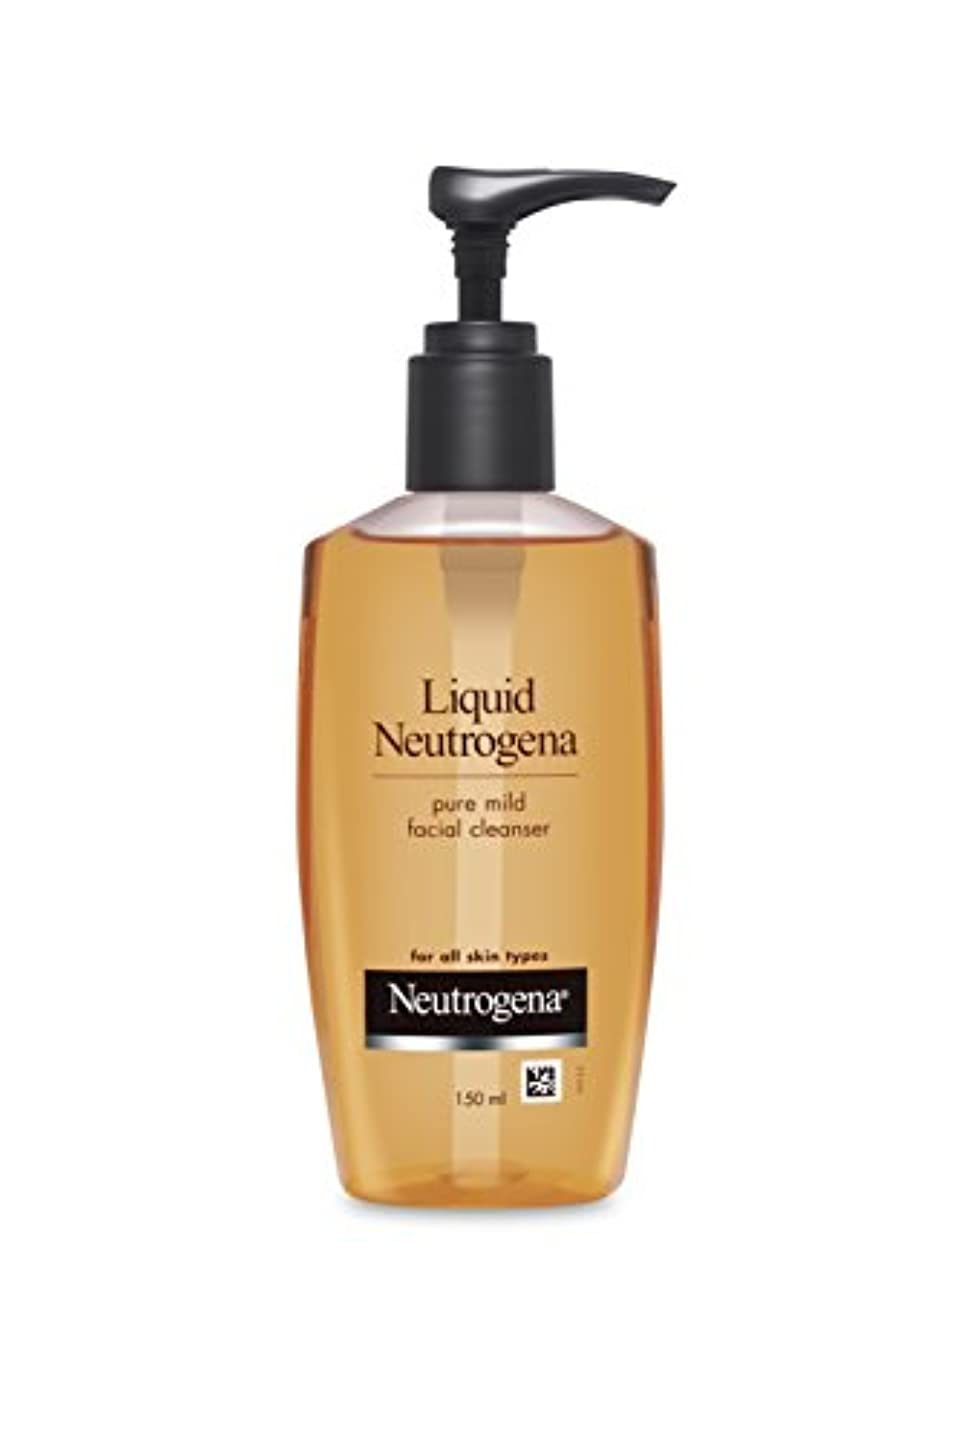 シニス性格ワックスLiquid Neutrogena (Mild Facial Cleanser), 150ml